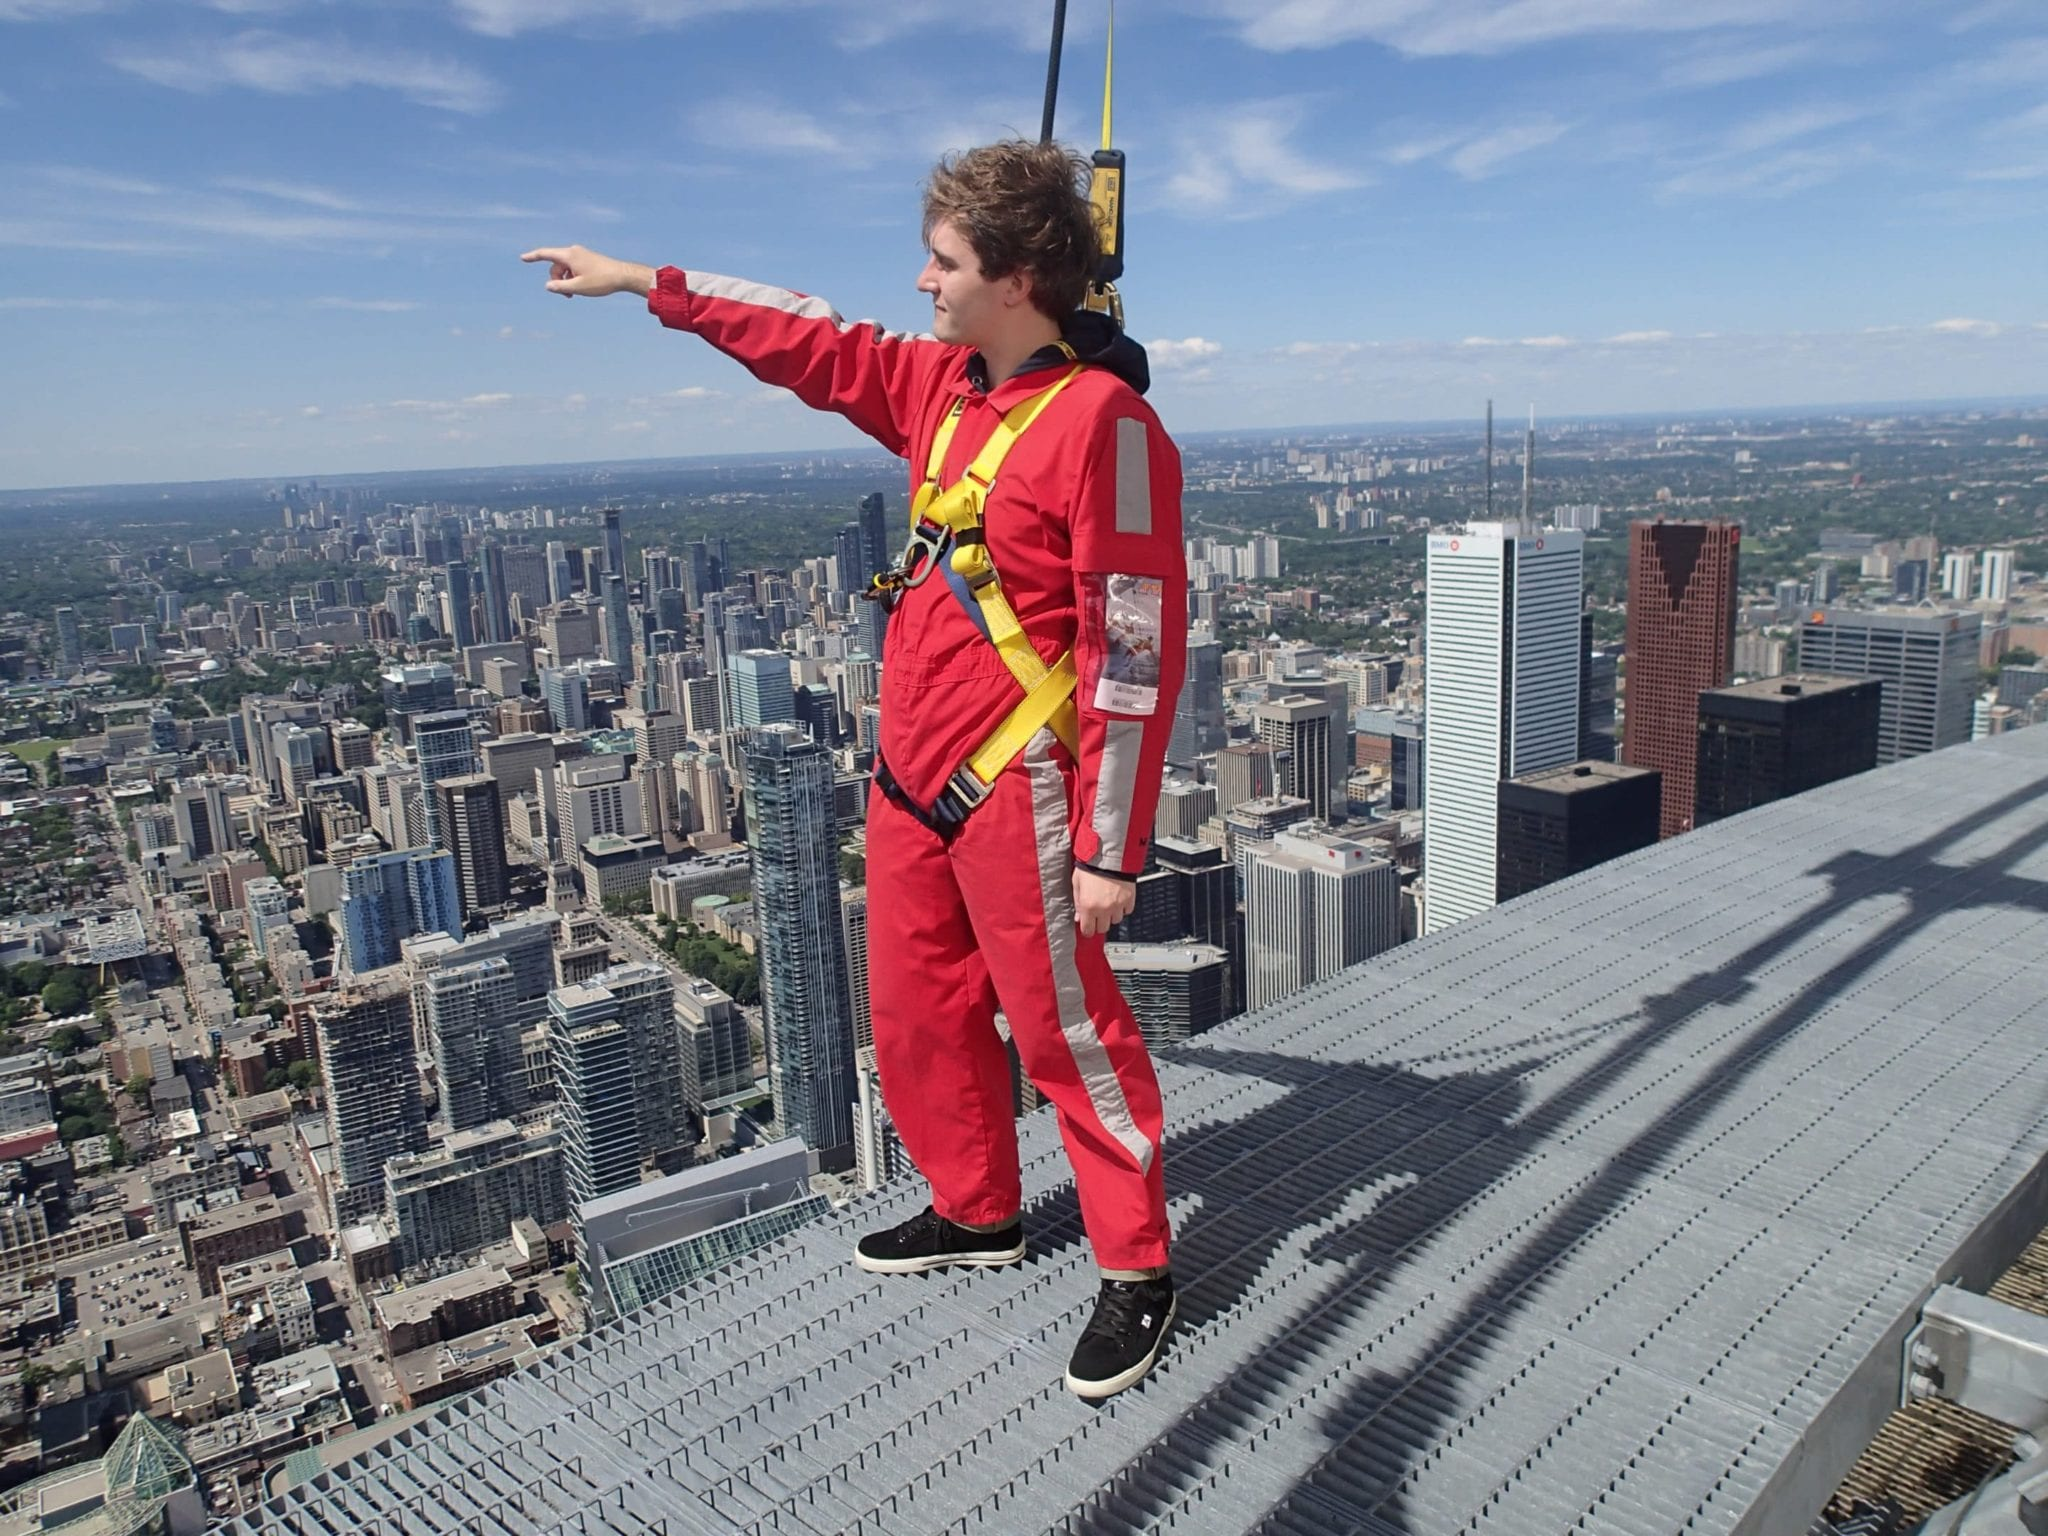 Nathan Brittain does the EdgeWalk